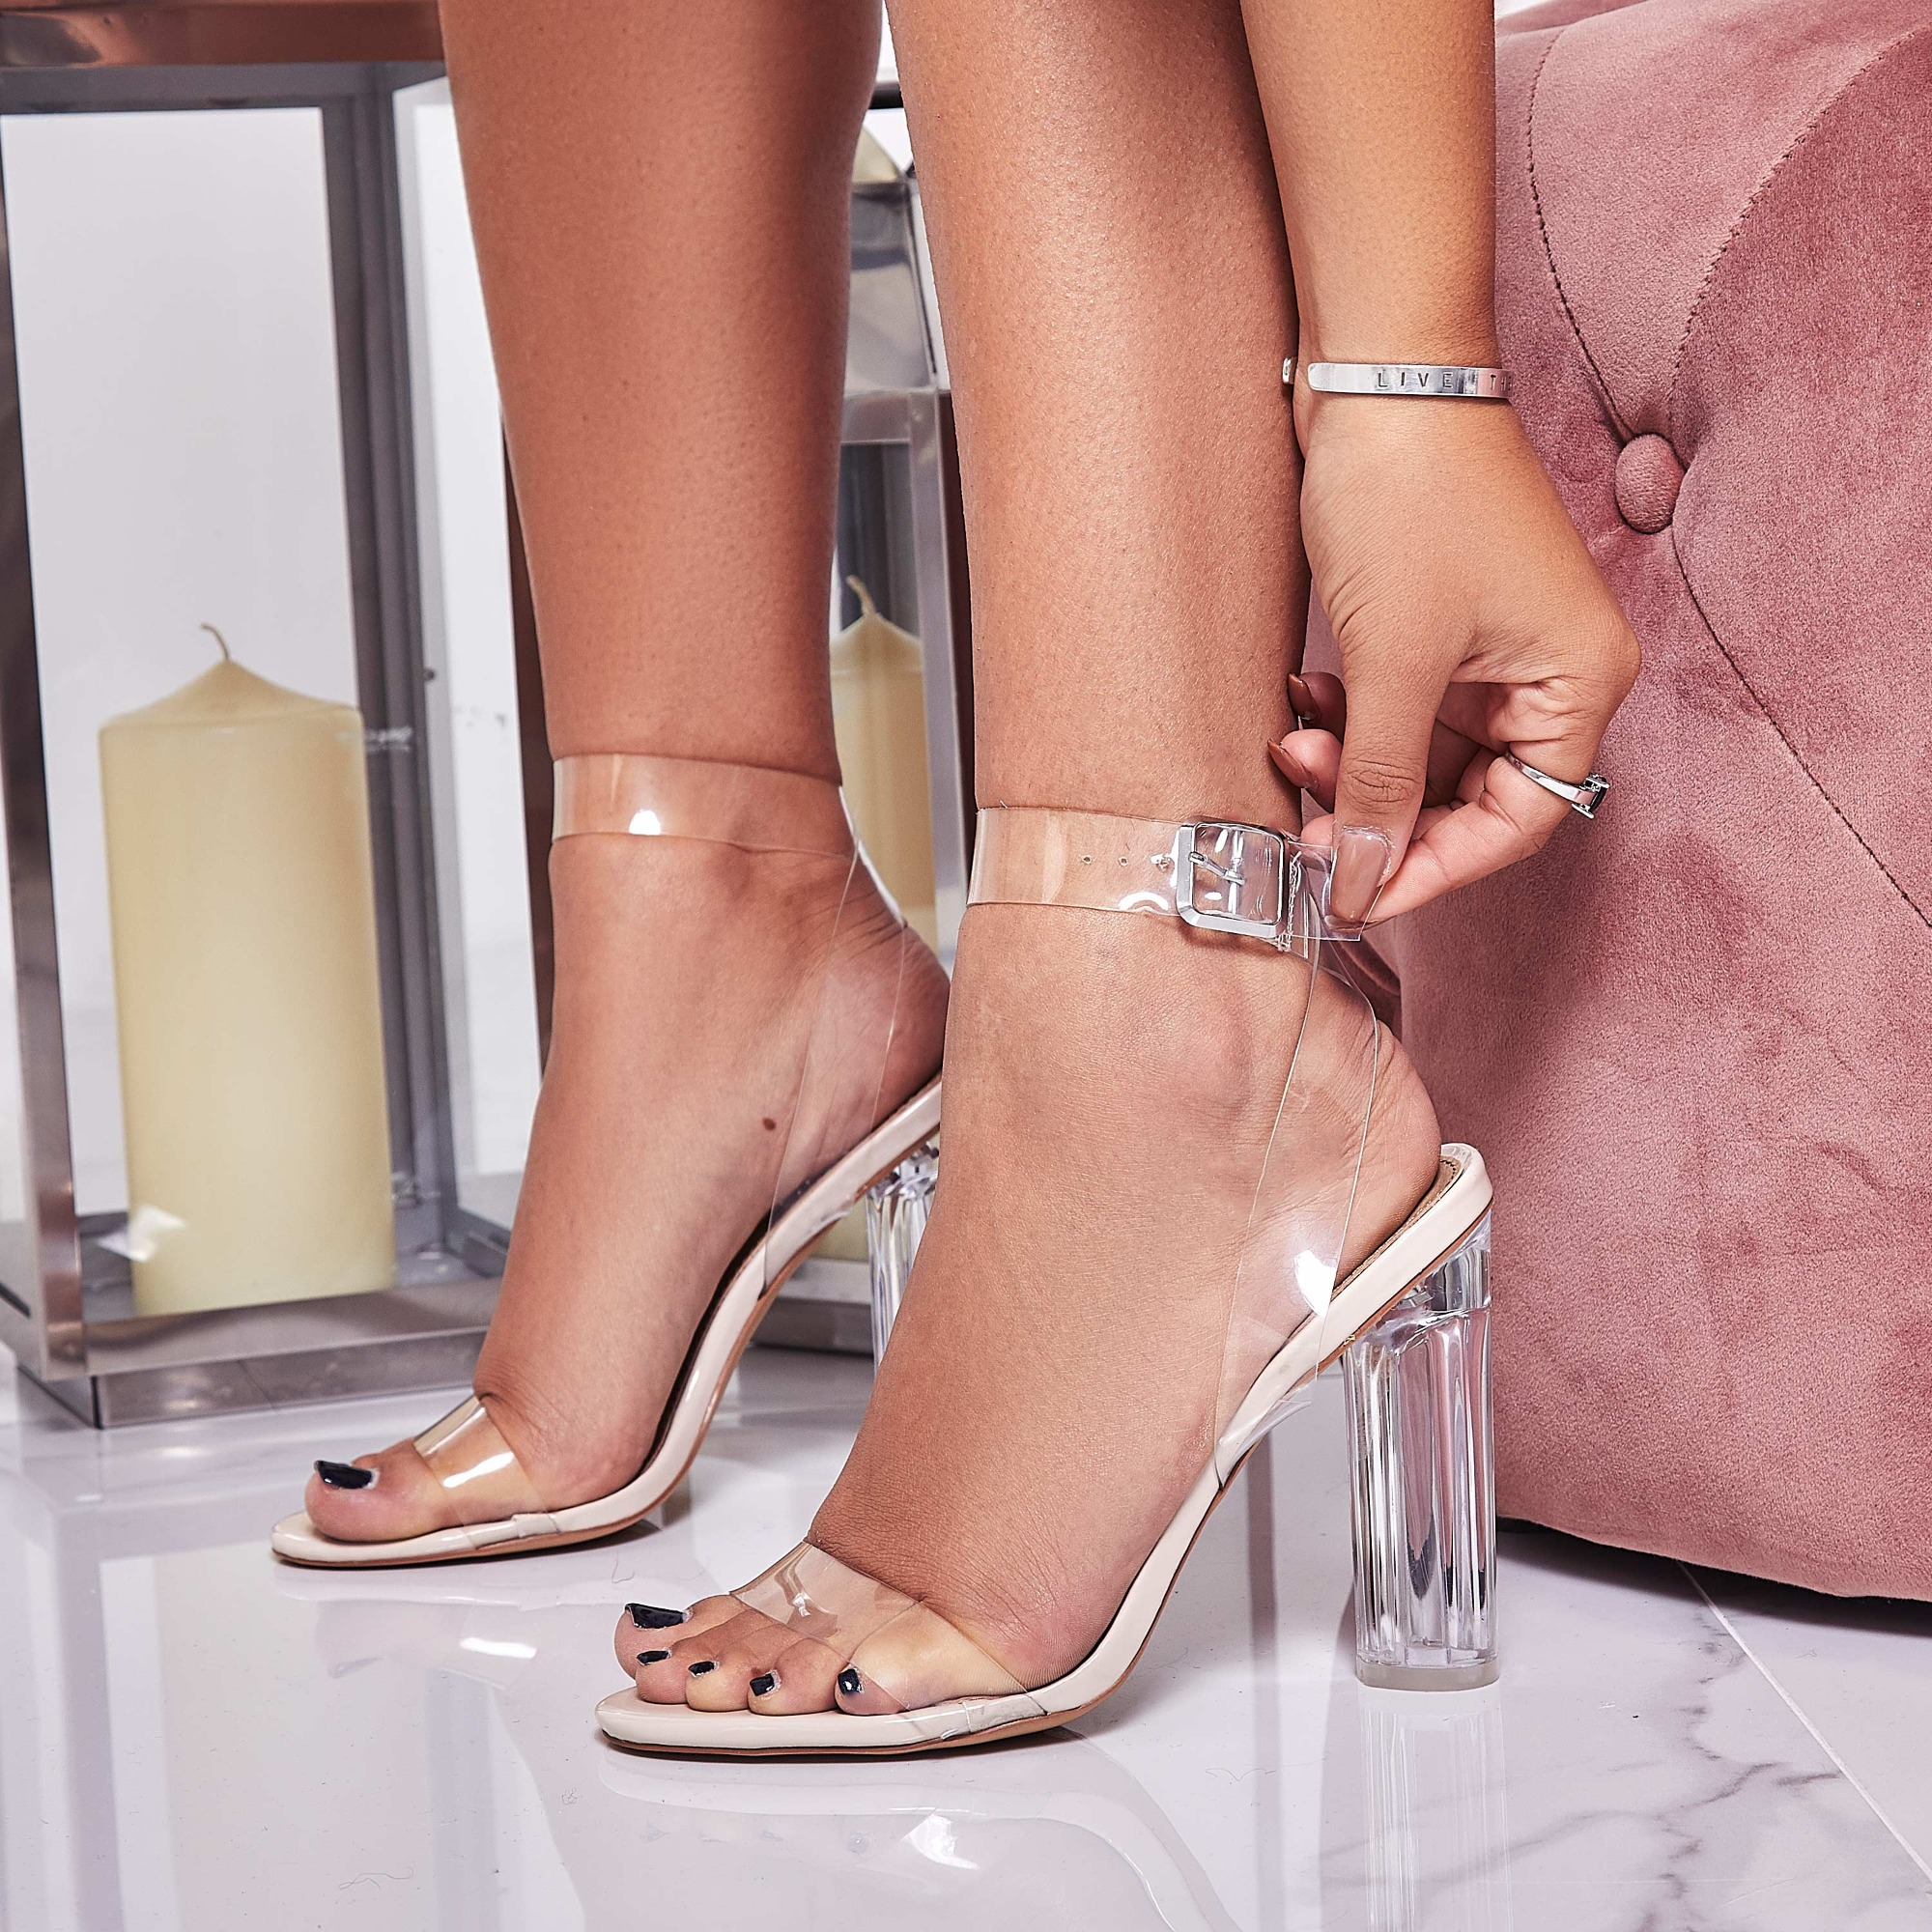 d11a751feb6 Ariana Strappy Sandal In Clear Perspex Image 1